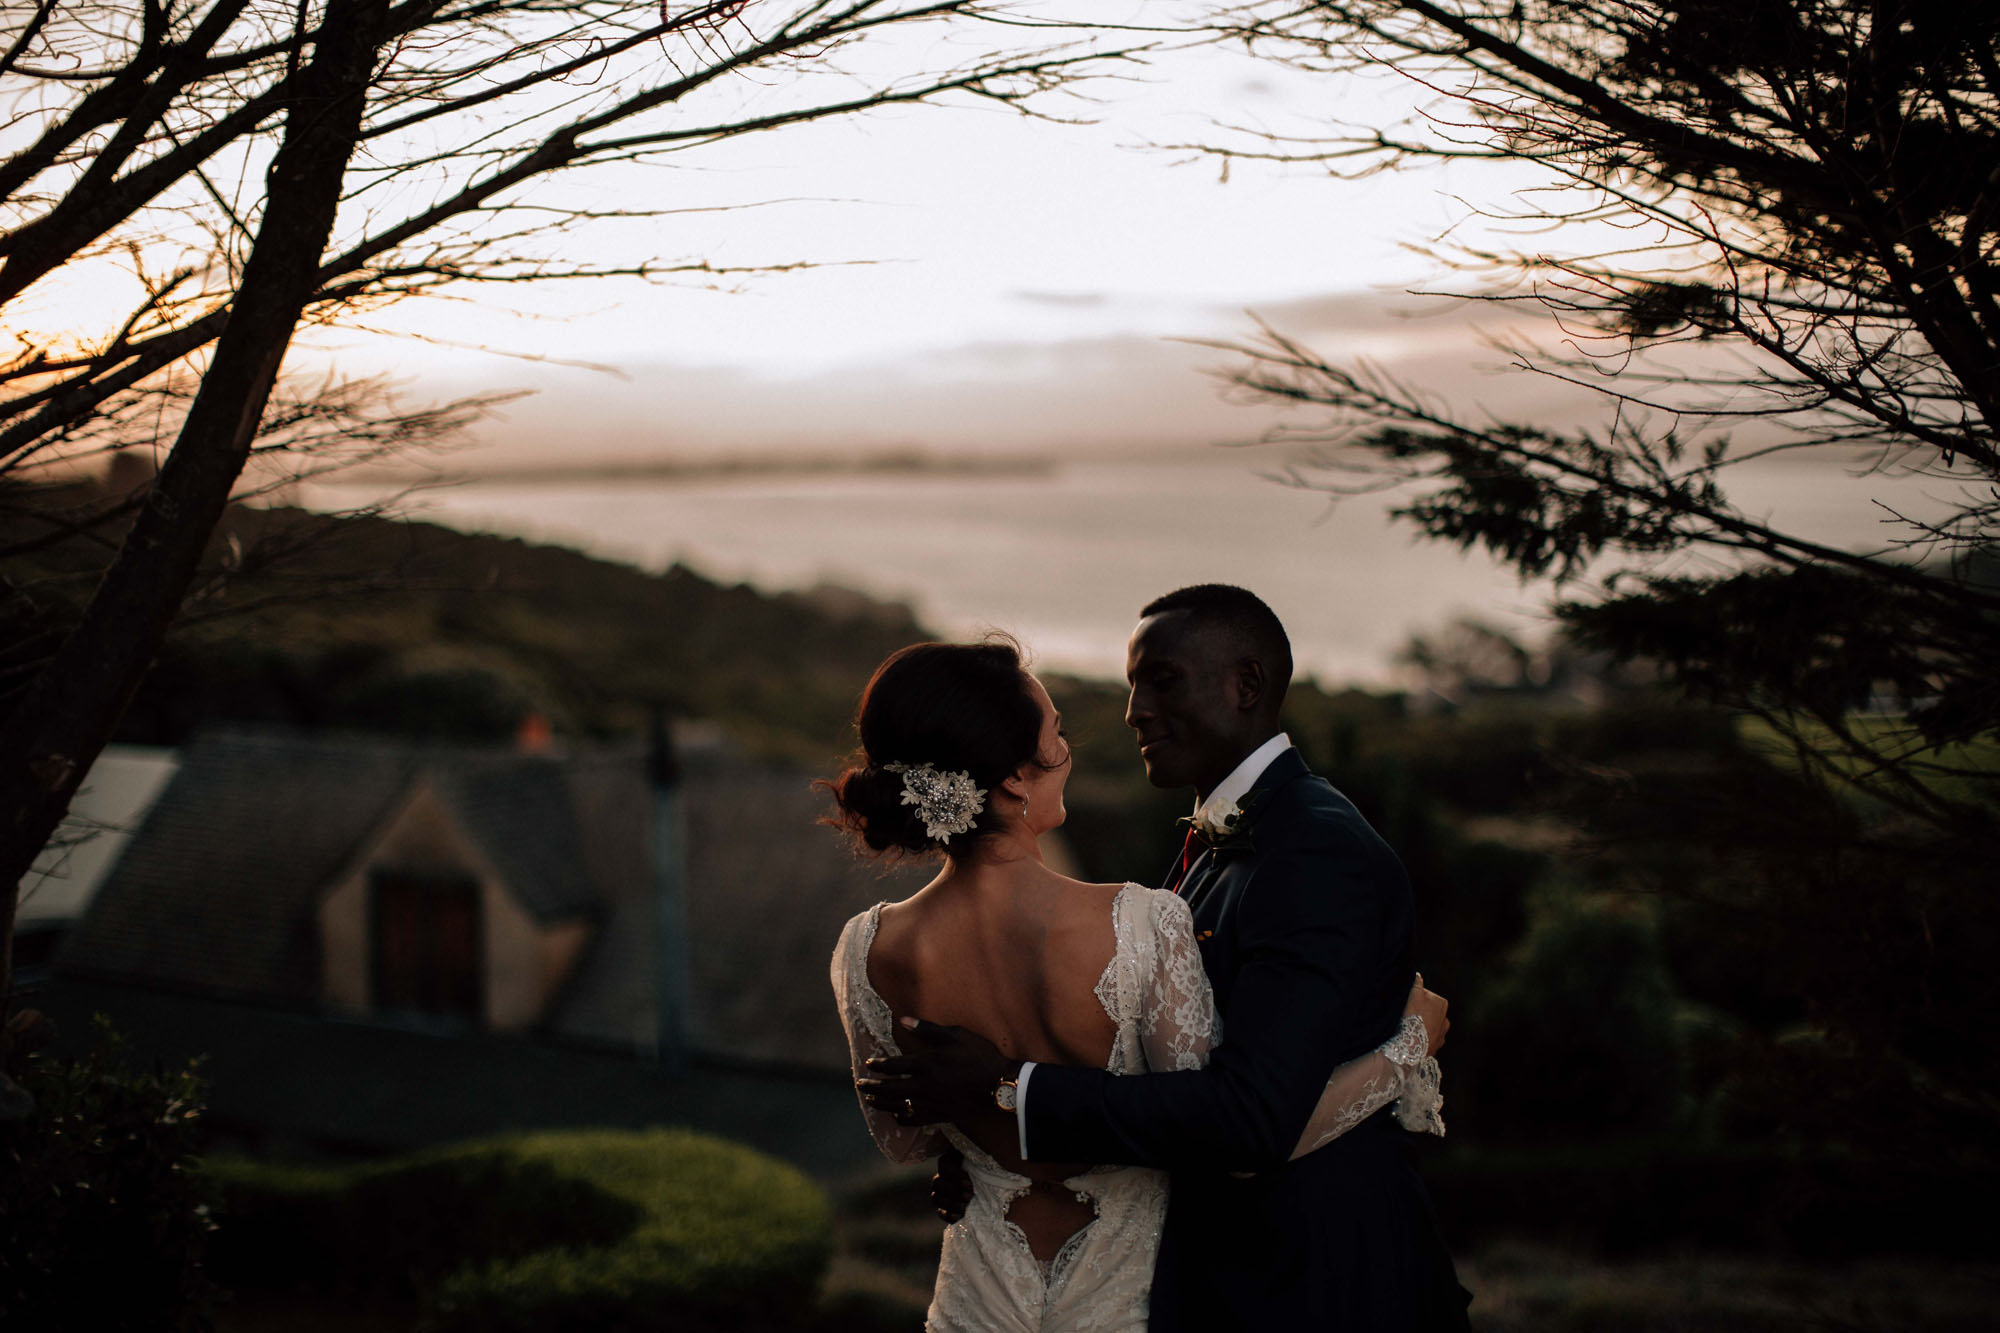 Ihemba and Charlotte | Jesse And Jesse Wedding PhotographyWedding 3 New Zealand _-38.jpg